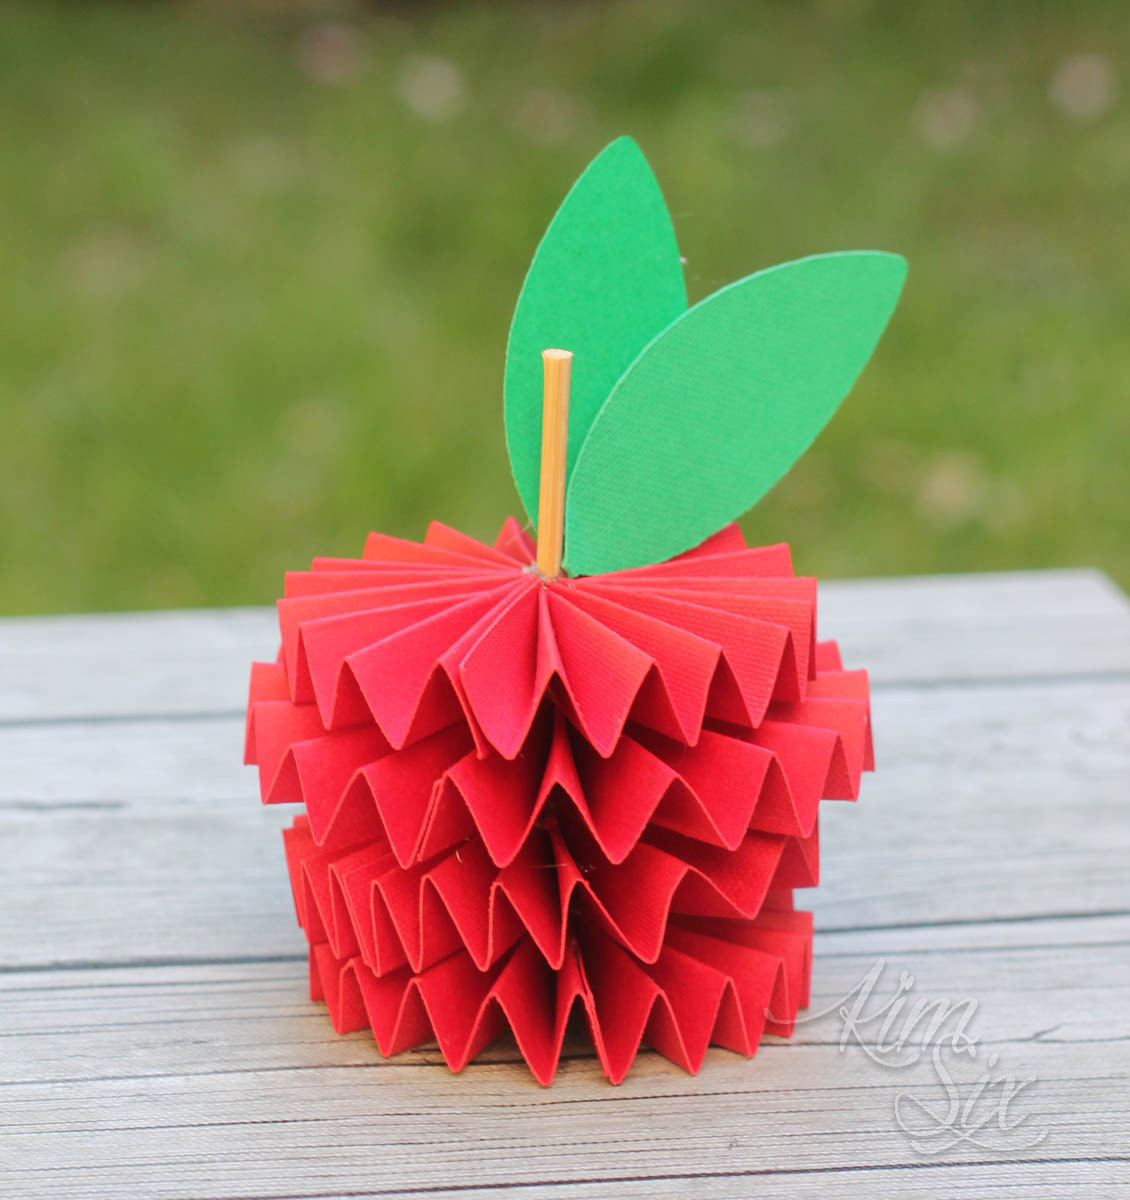 How to make a 3d folded paper apple out of cardstock using a cricut scoring wheel